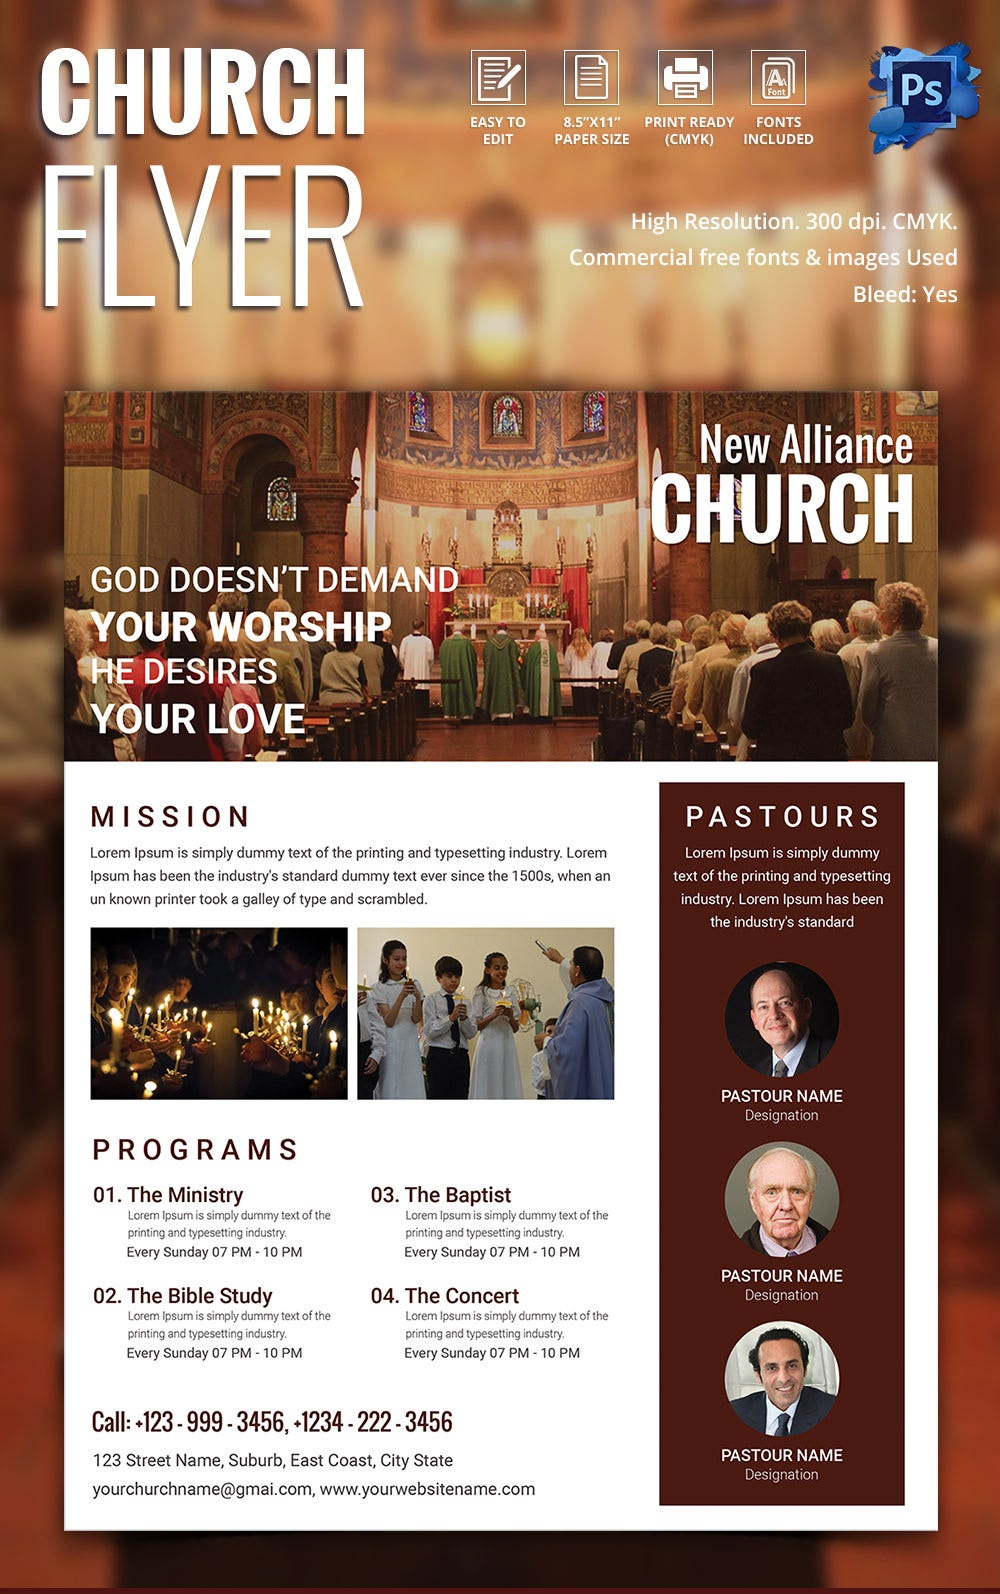 church flyer template free - 28 images - 20 church flyers free psd ...